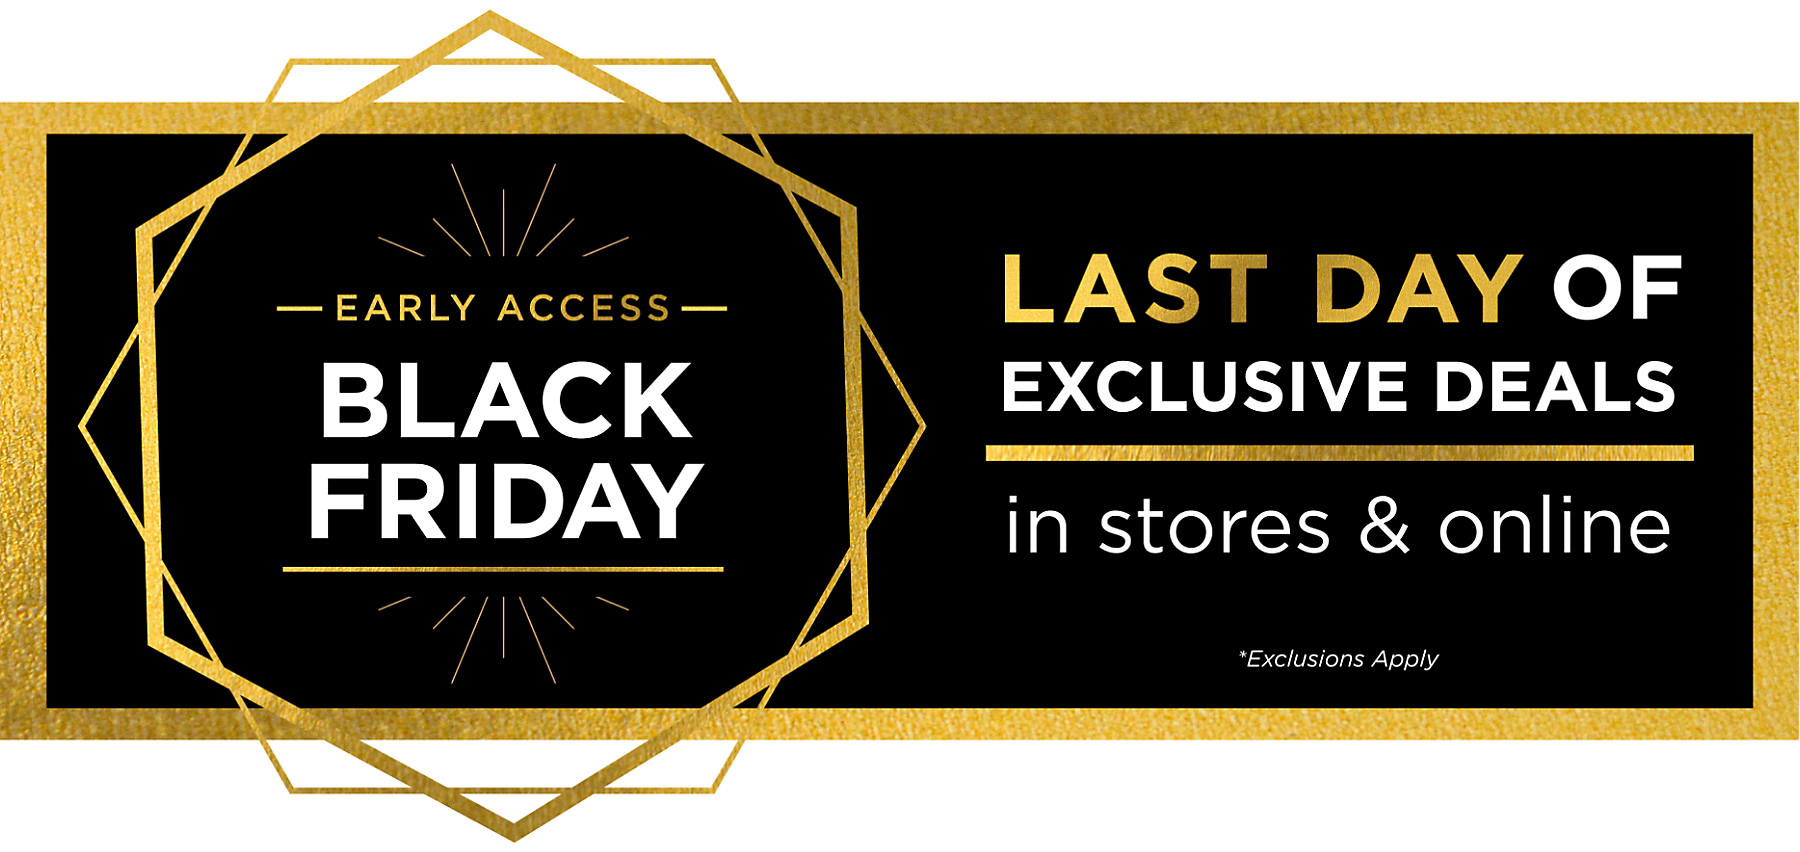 Black Friday Early Access Last Day of Exclusive Deals in stores & online Exclusions Apply